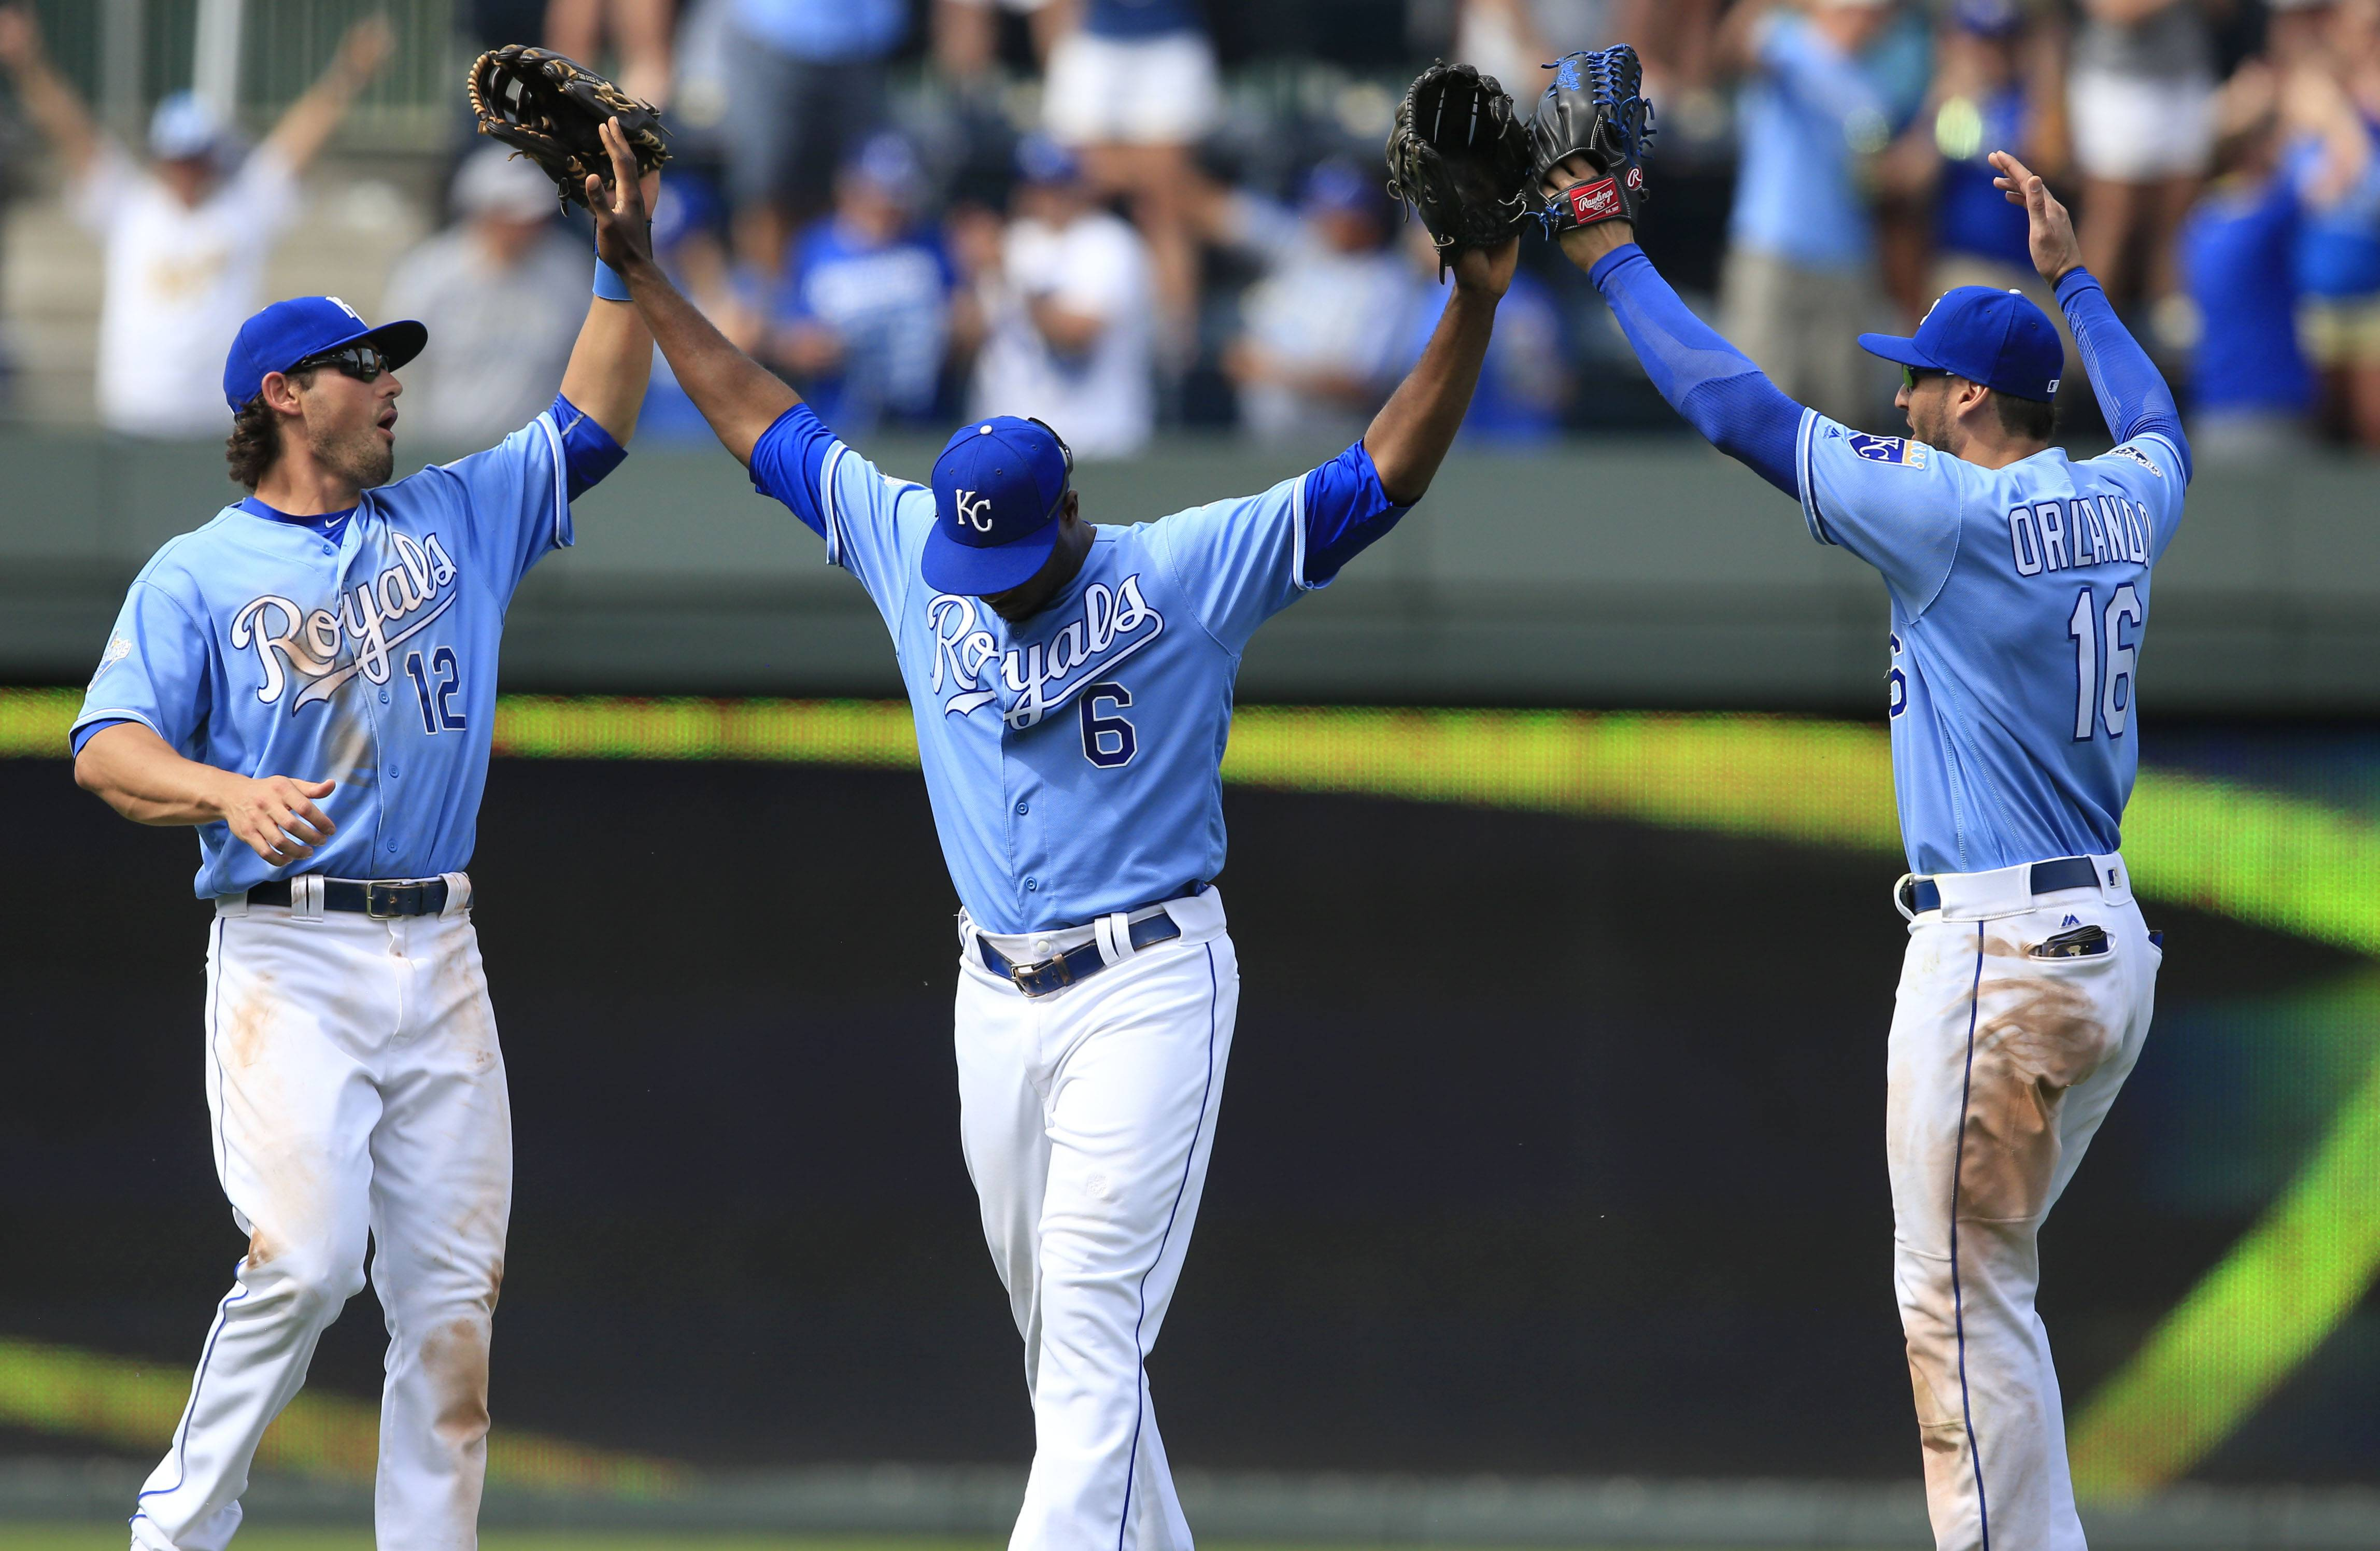 Kansas City Royals center fielder Lorenzo Cain (6) celebrates with fellow outfielders Brett Eibner (12) and Paulo Orlando (16) following a baseball game against the Chicago White Sox at Kauffman Stadium in Kansas City, Mo., Sunday, May 29, 2016. The Royals defeated the White Sox 5-4. (AP Photo/Orlin Wagner)